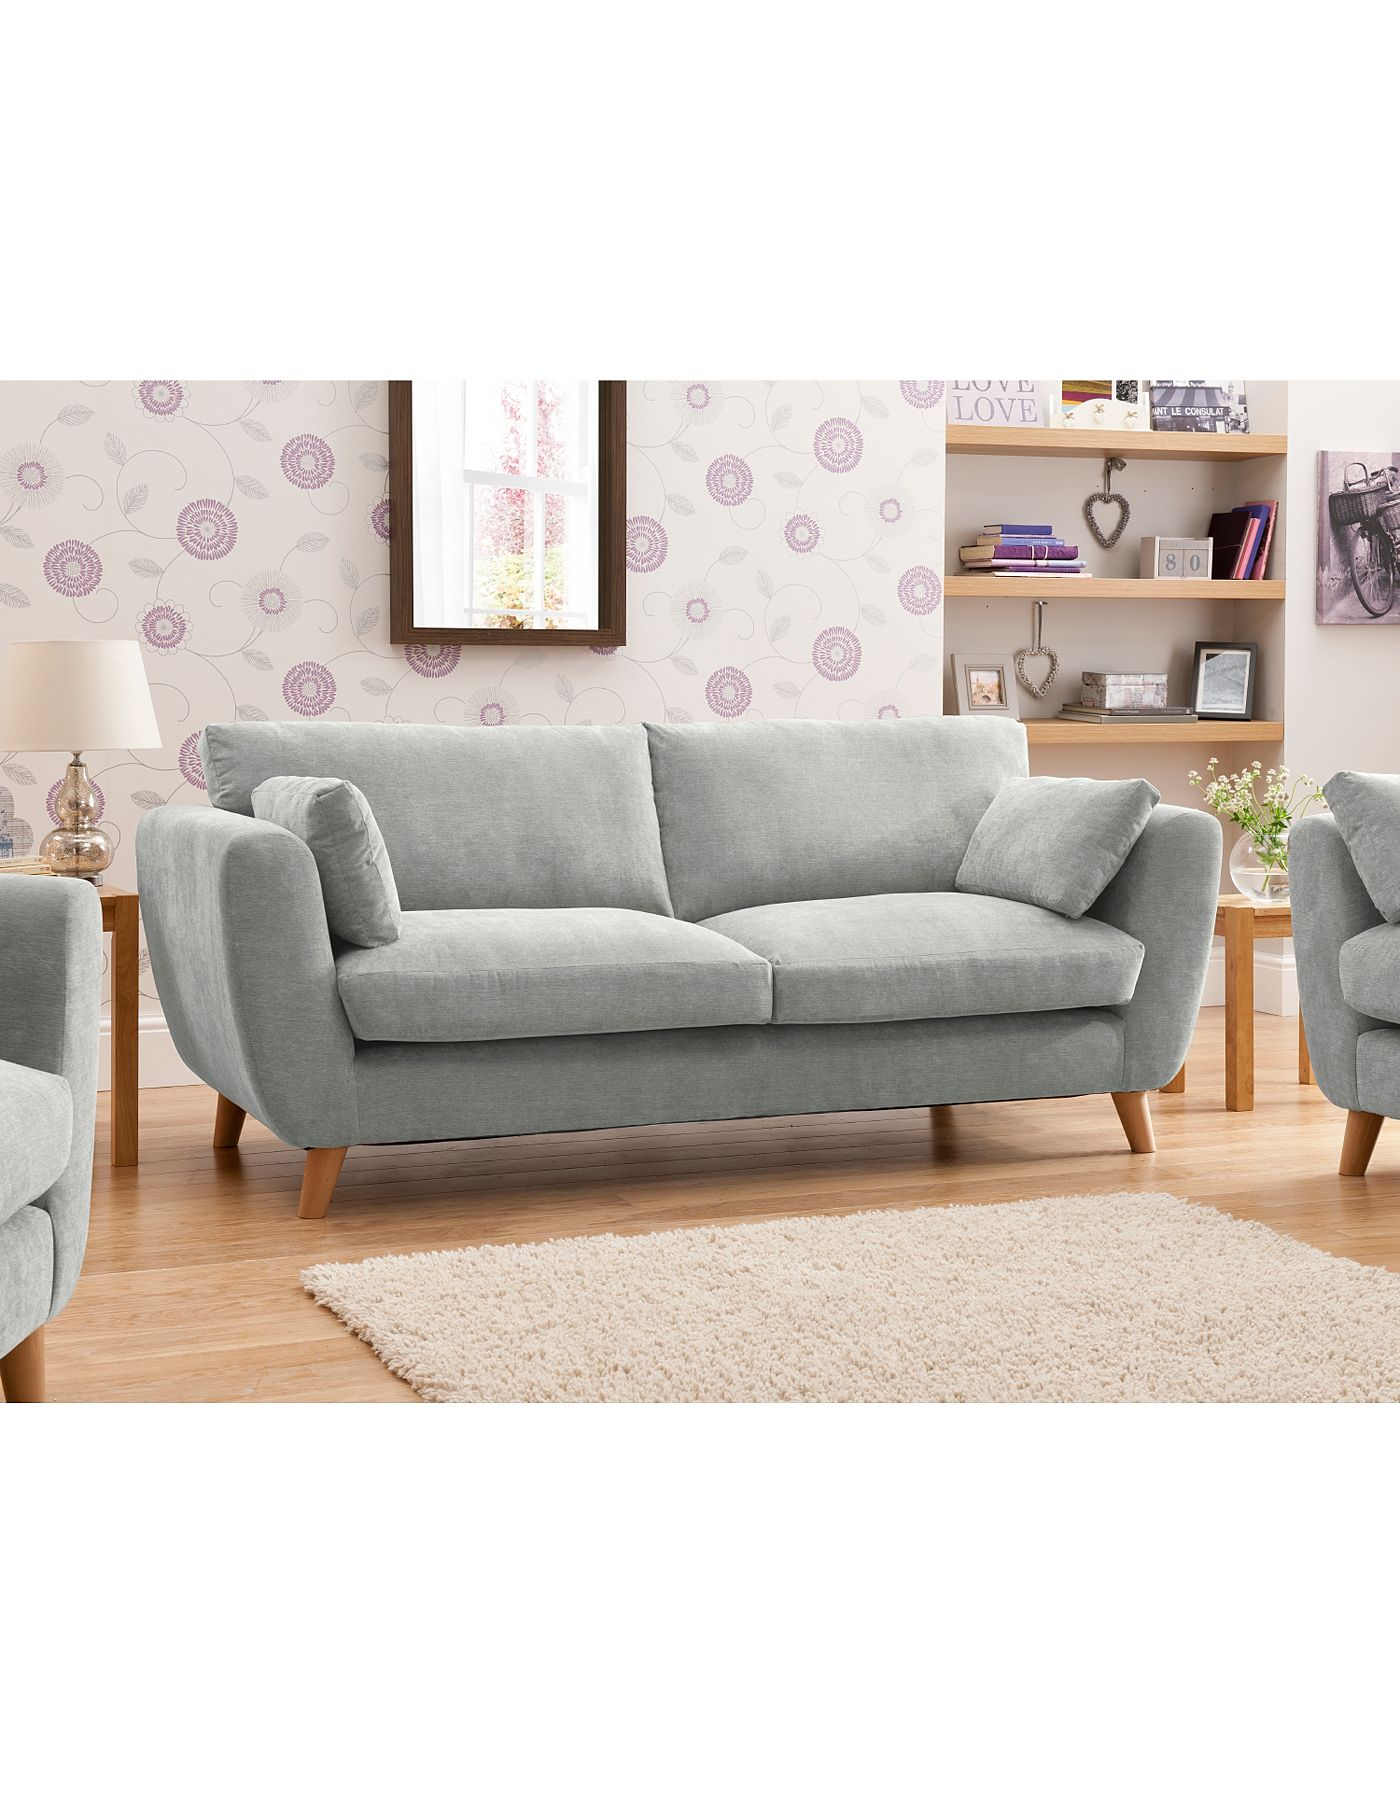 Sloane Sofa Asda Dark Grey Fabric Sectional Large In Green Sofas Armchairs Direct Inne